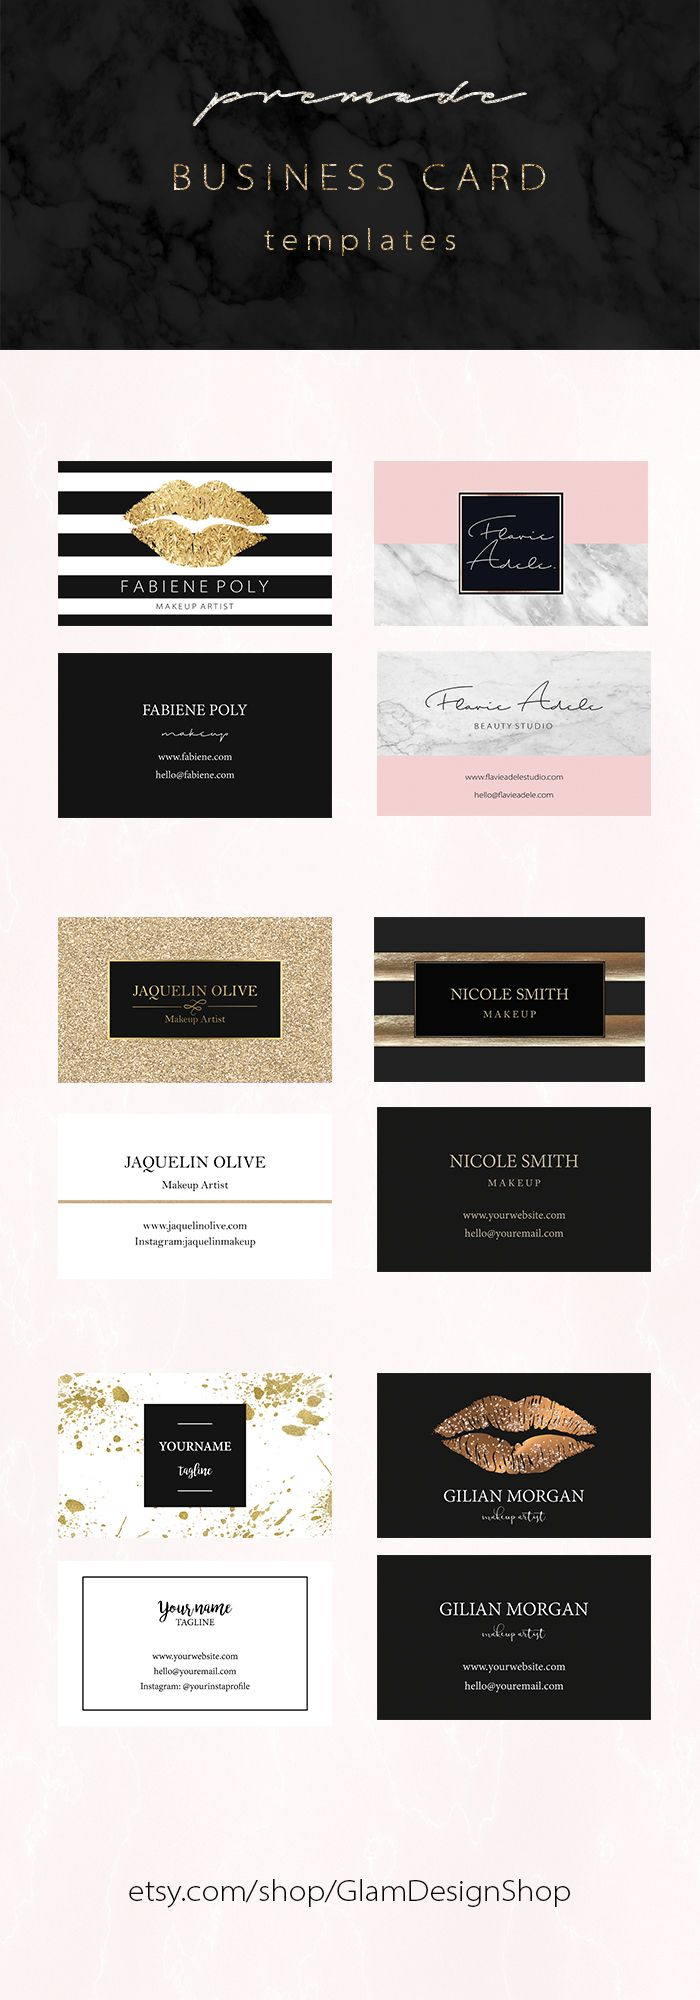 Feminine business card templates - instant downloads Photoshop templates - makeup artist business card design  #femininebusinesscard  #makeupbusinesscard